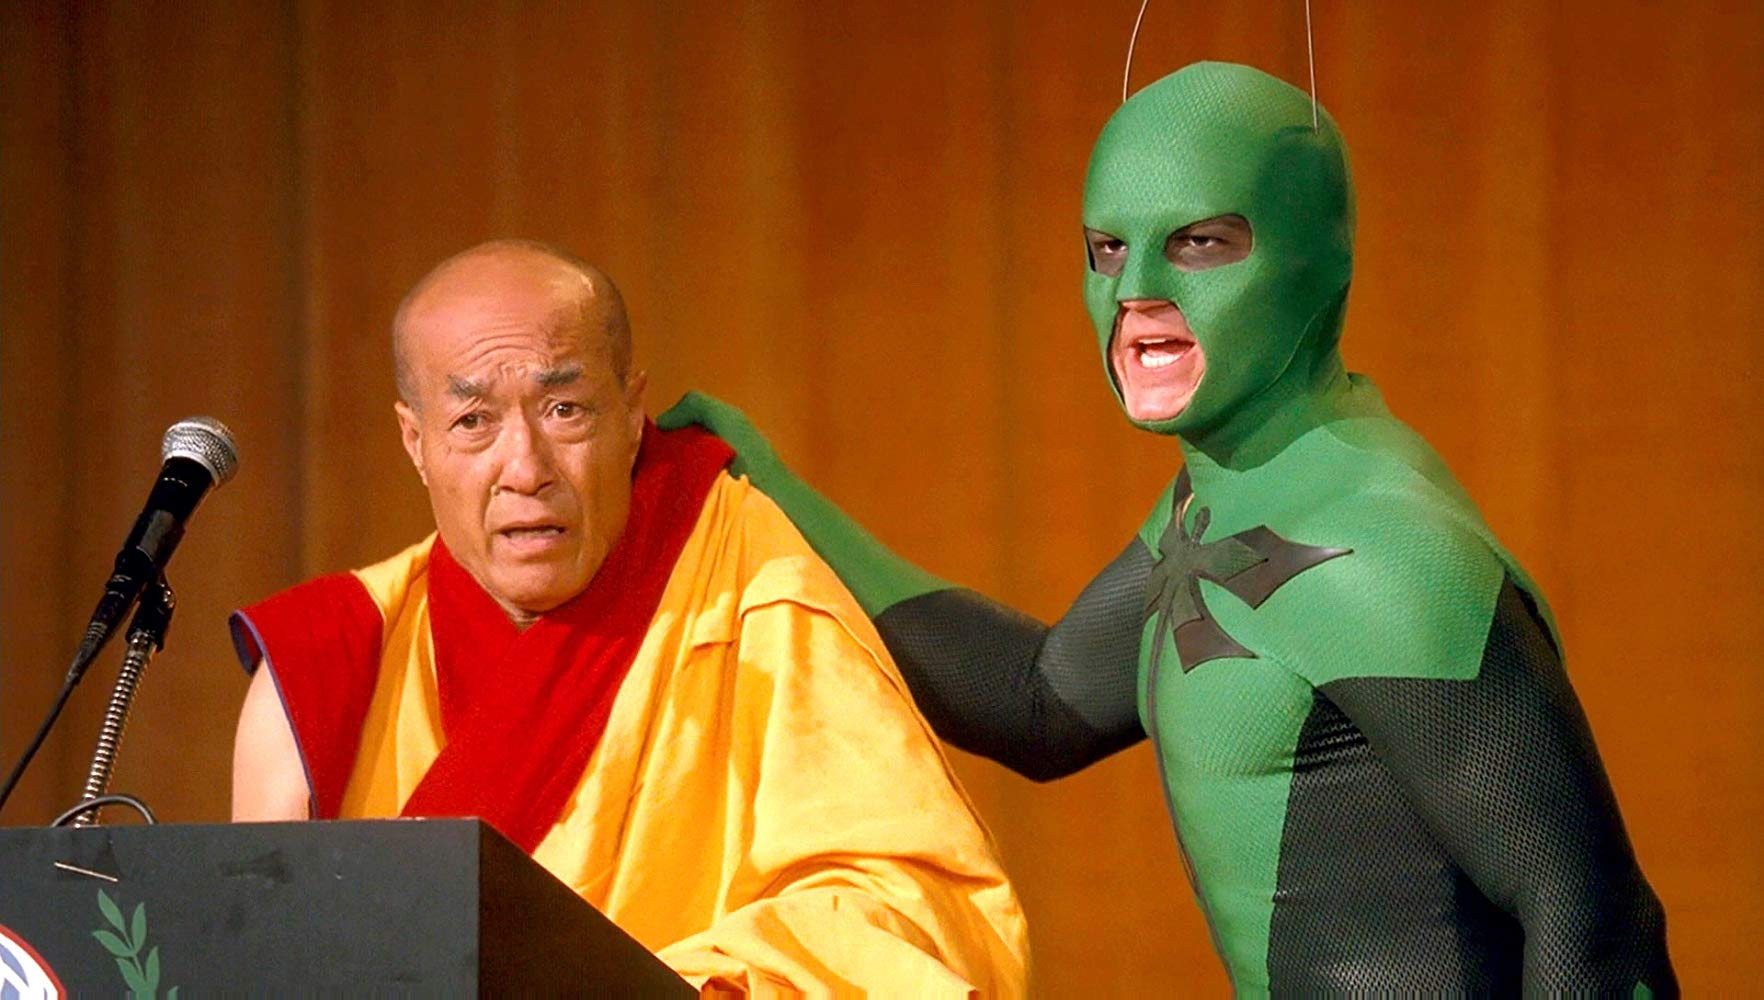 The Dragonfly (Drake Bell) apprehends the Dalai Lama in Superhero Movie (2008)